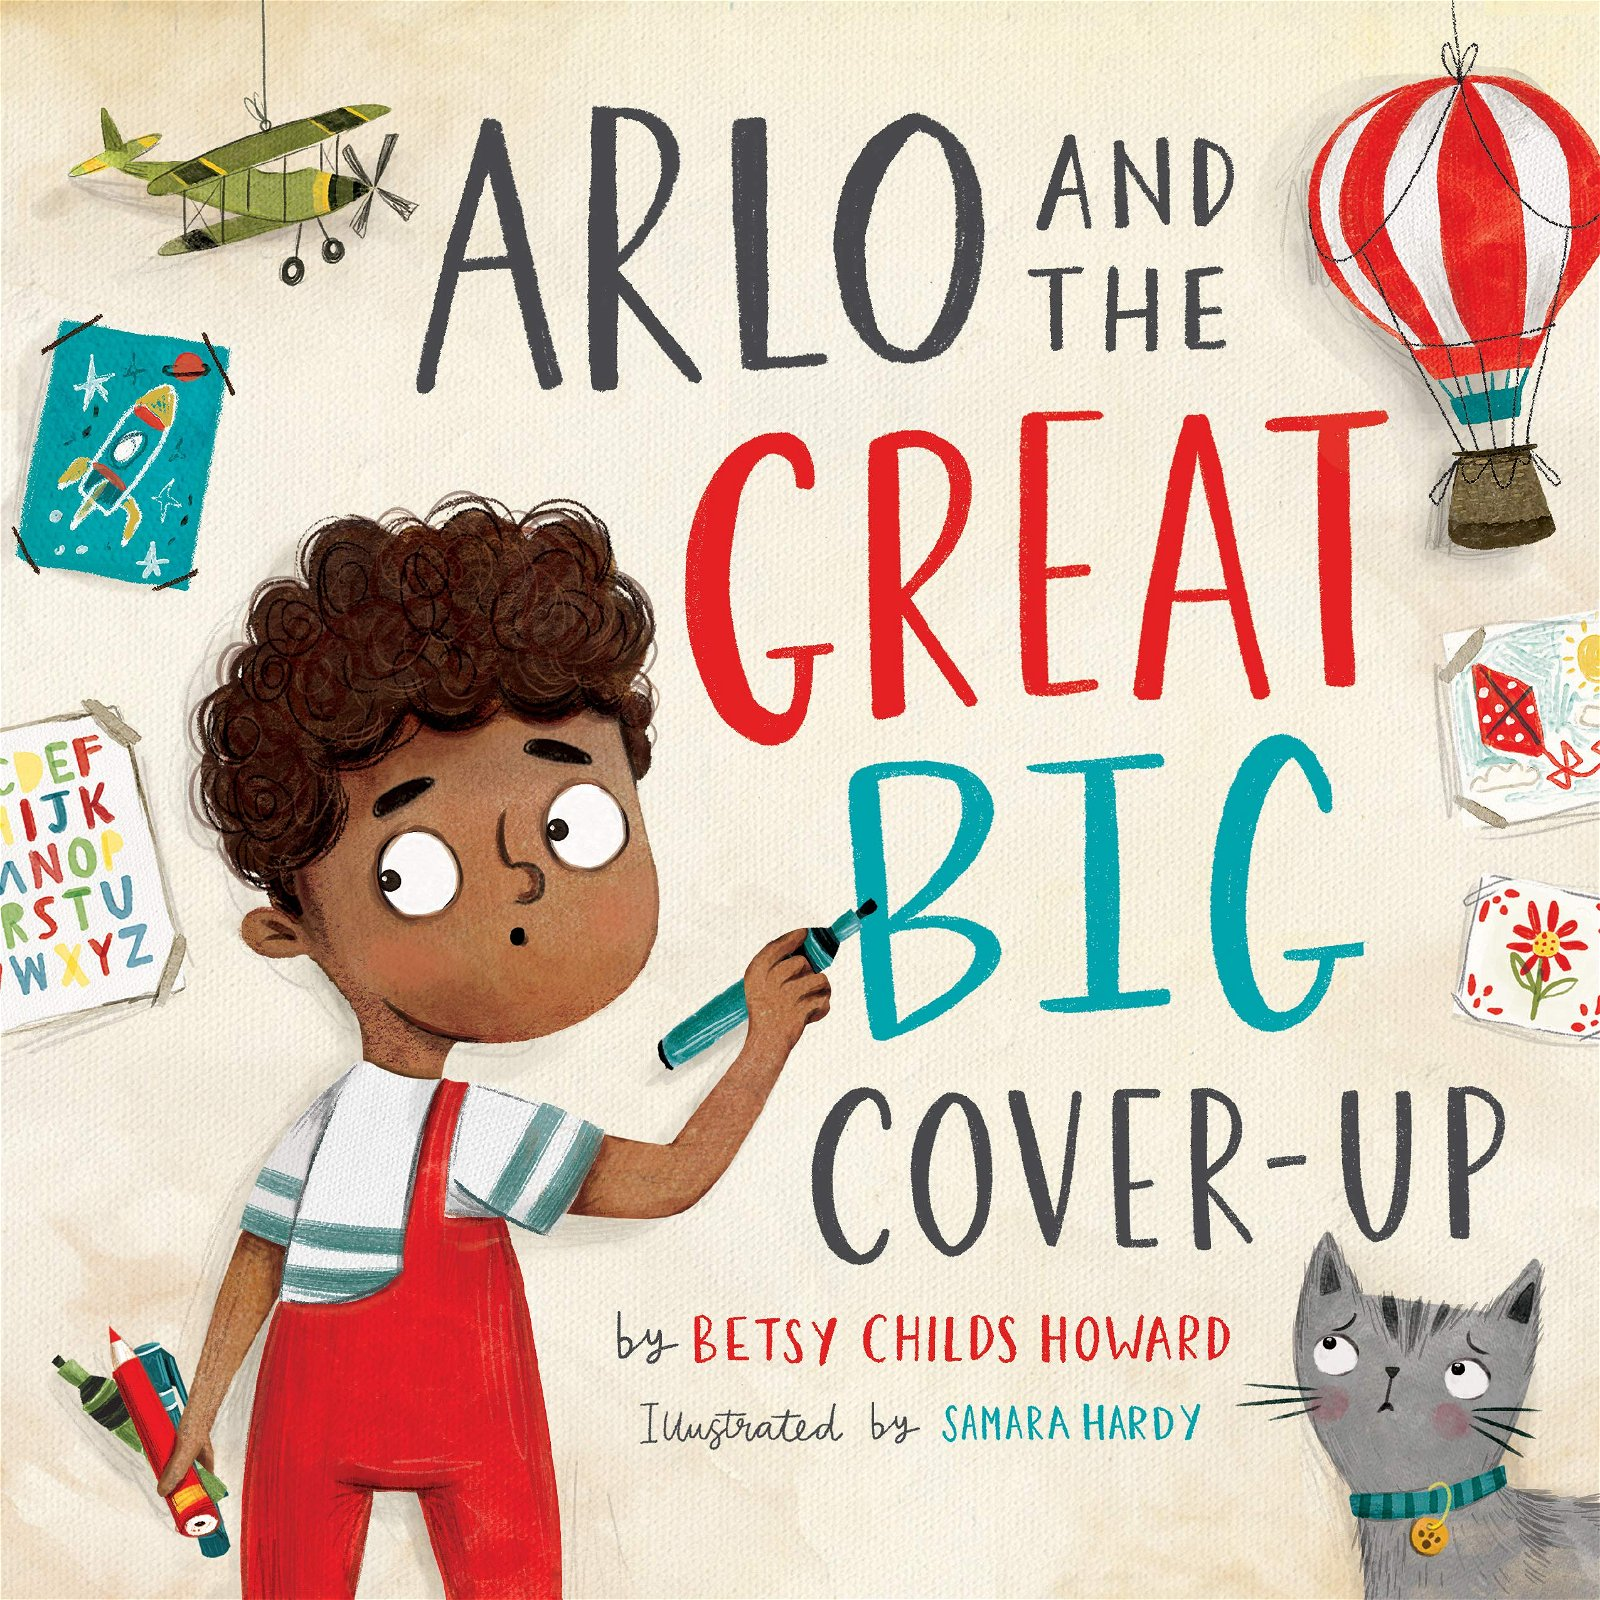 Arlo and the Great Big Cover-Up by Betsy Childs Howard